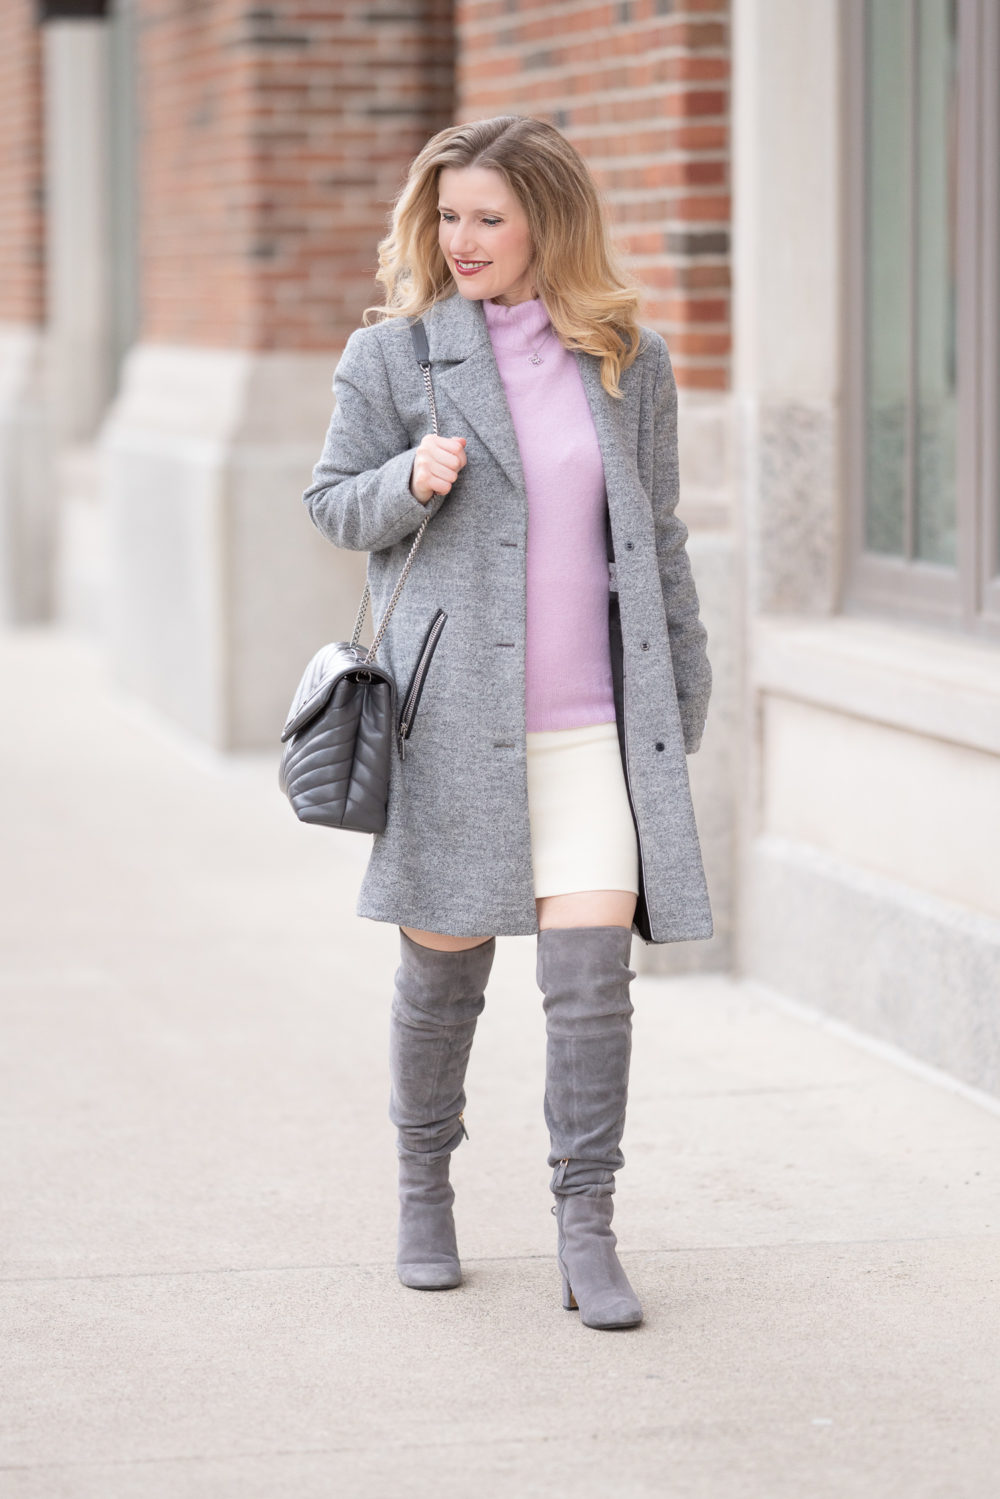 Petite Fashion Blog | J. Crew Mockneck Sweater | J. Crew Ivory Wool Skirt | Grey Suede Over the Knee Boots | Saint Laurent Loulou Bag